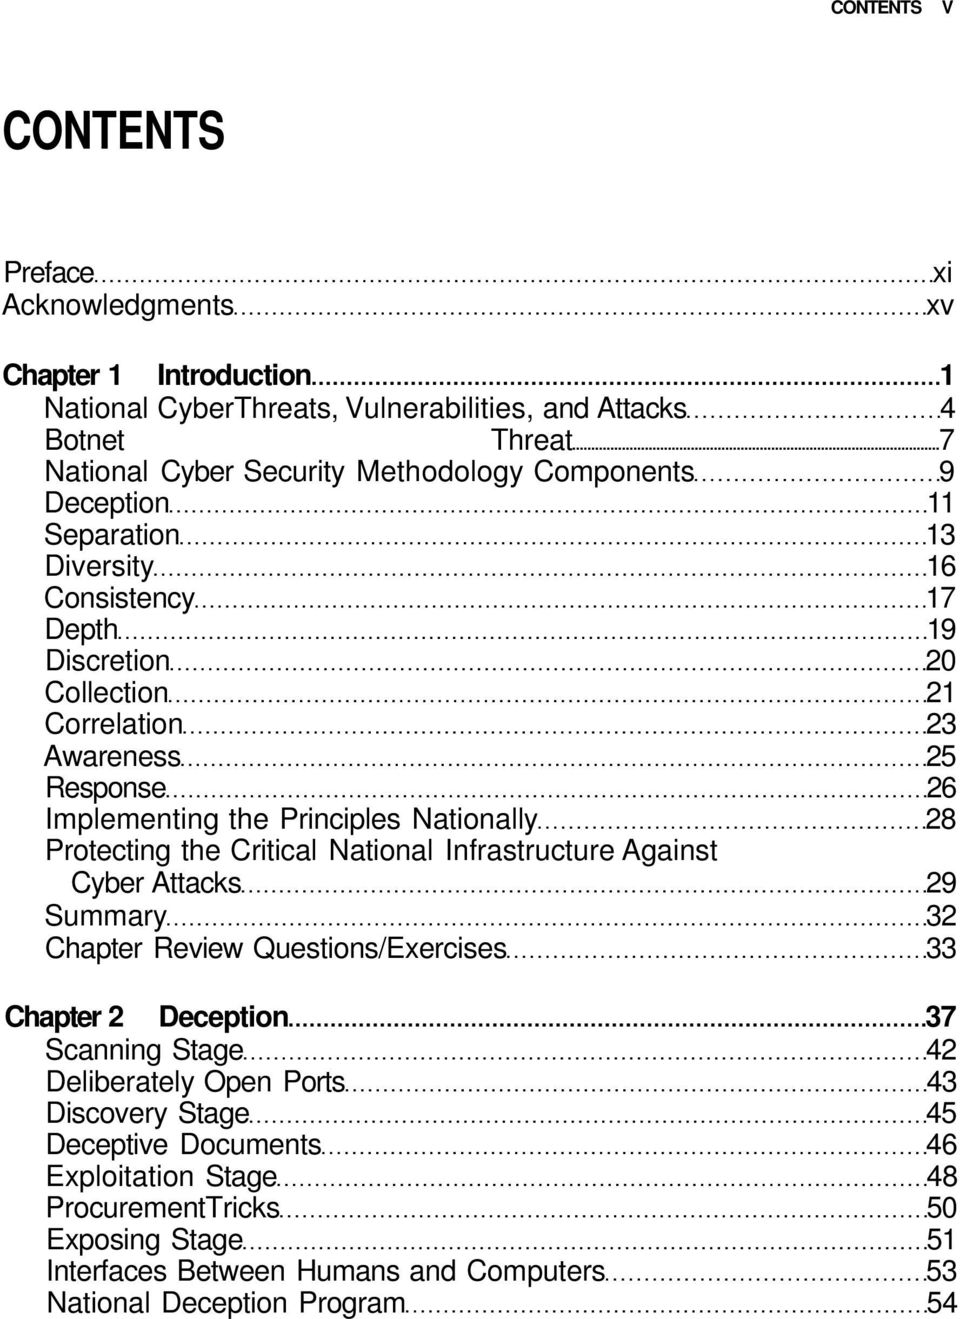 28 Protecting the Critical National Infrastructure Against Cyber Attacks 29 Summary 32 Chapter Review Questions/Exercises 33 Chapter 2 Deception 37 Scanning Stage 42 Deliberately Open